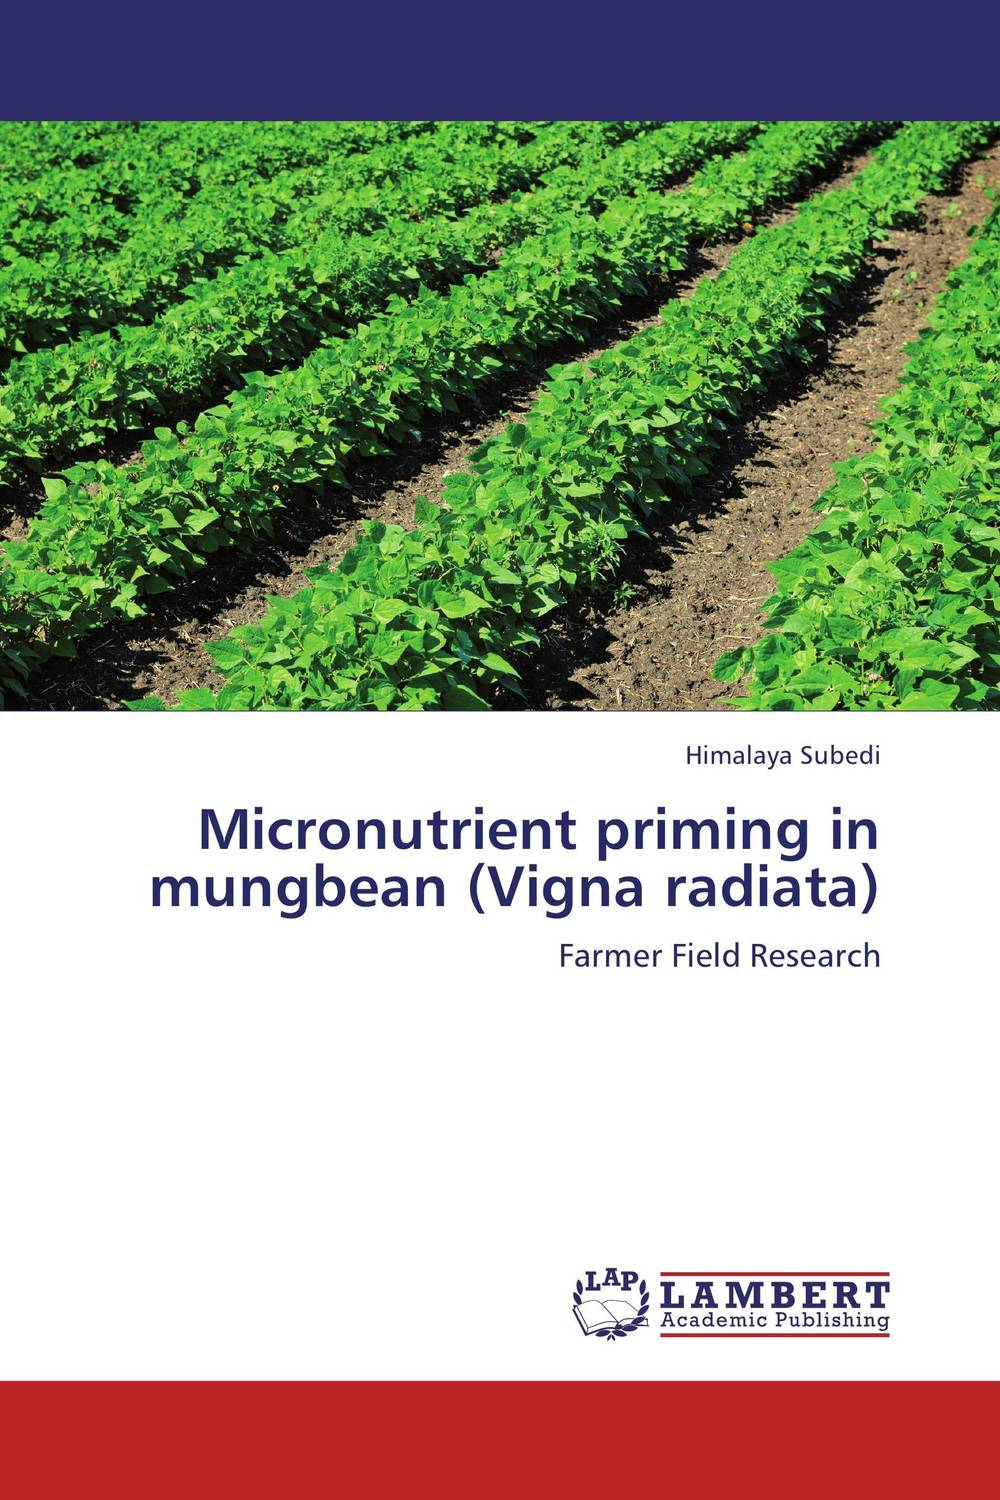 Micronutrient priming in mungbean (Vigna radiata) mohd mazid and taqi ahmed khan interaction between auxin and vigna radiata l under cadmium stress